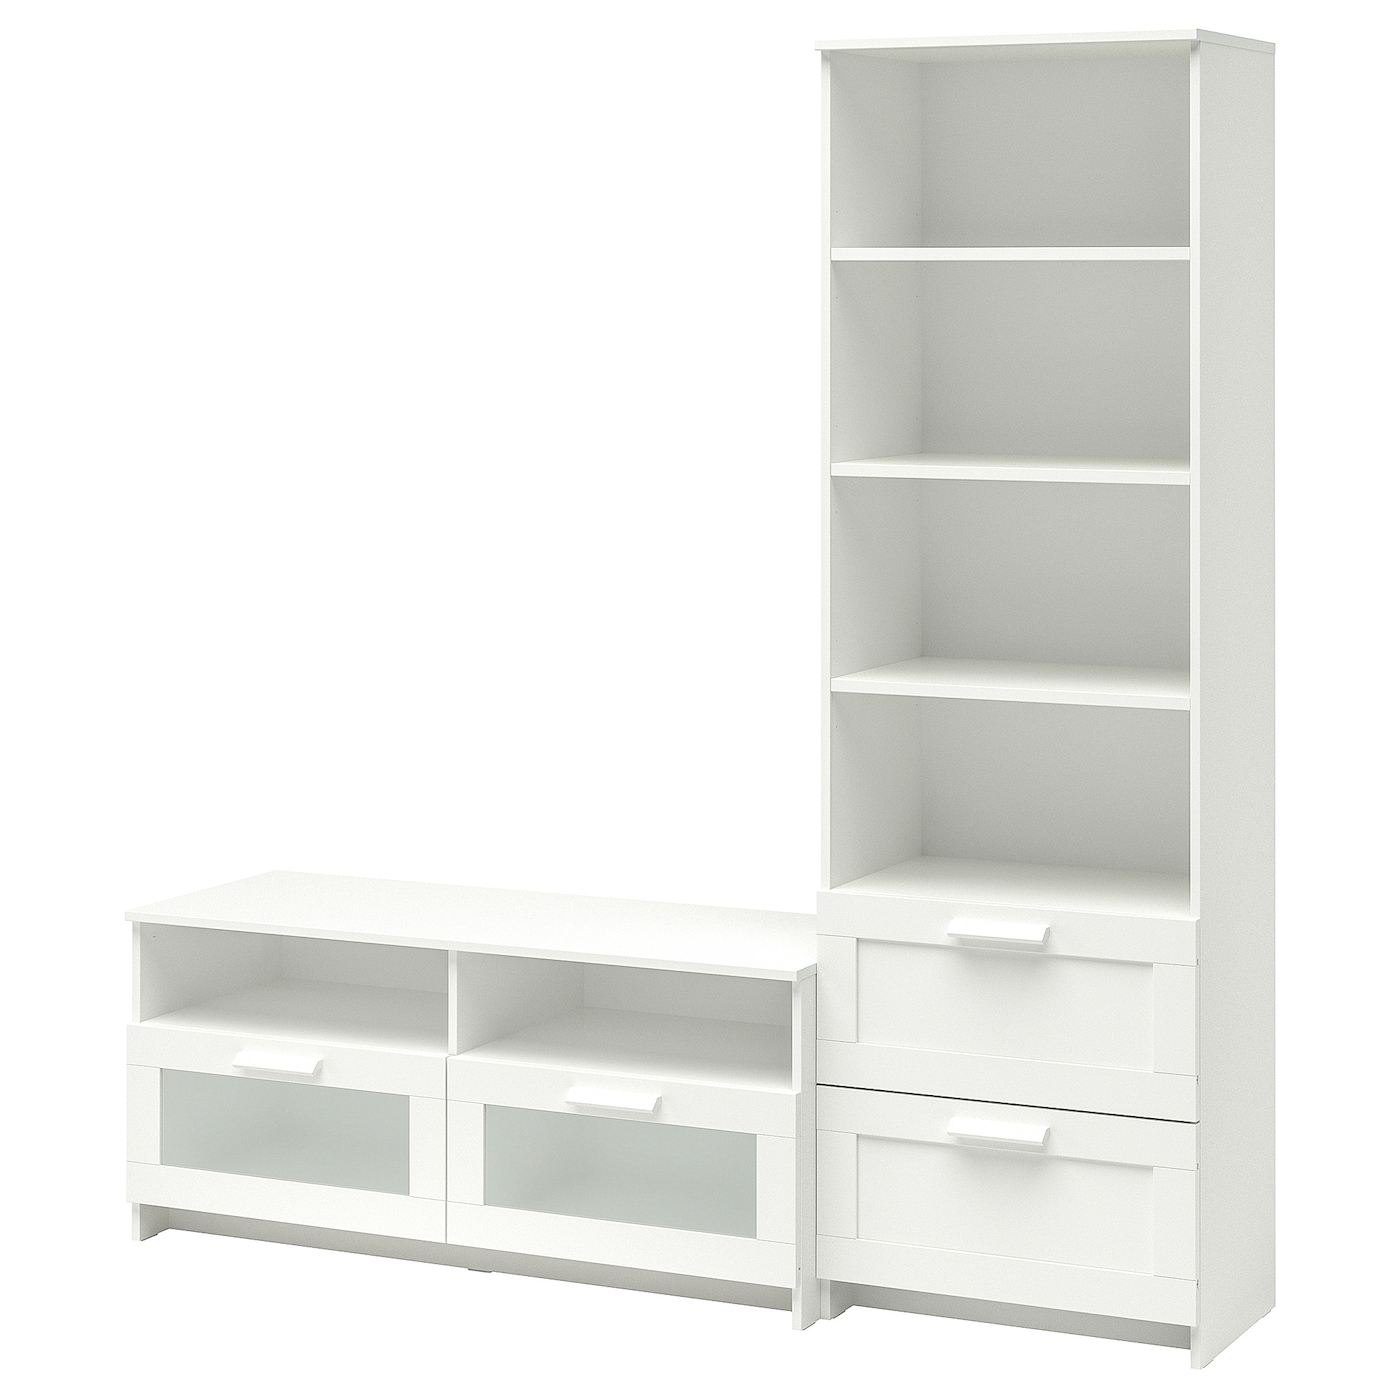 tv stands & media units | ikea ireland – dublin